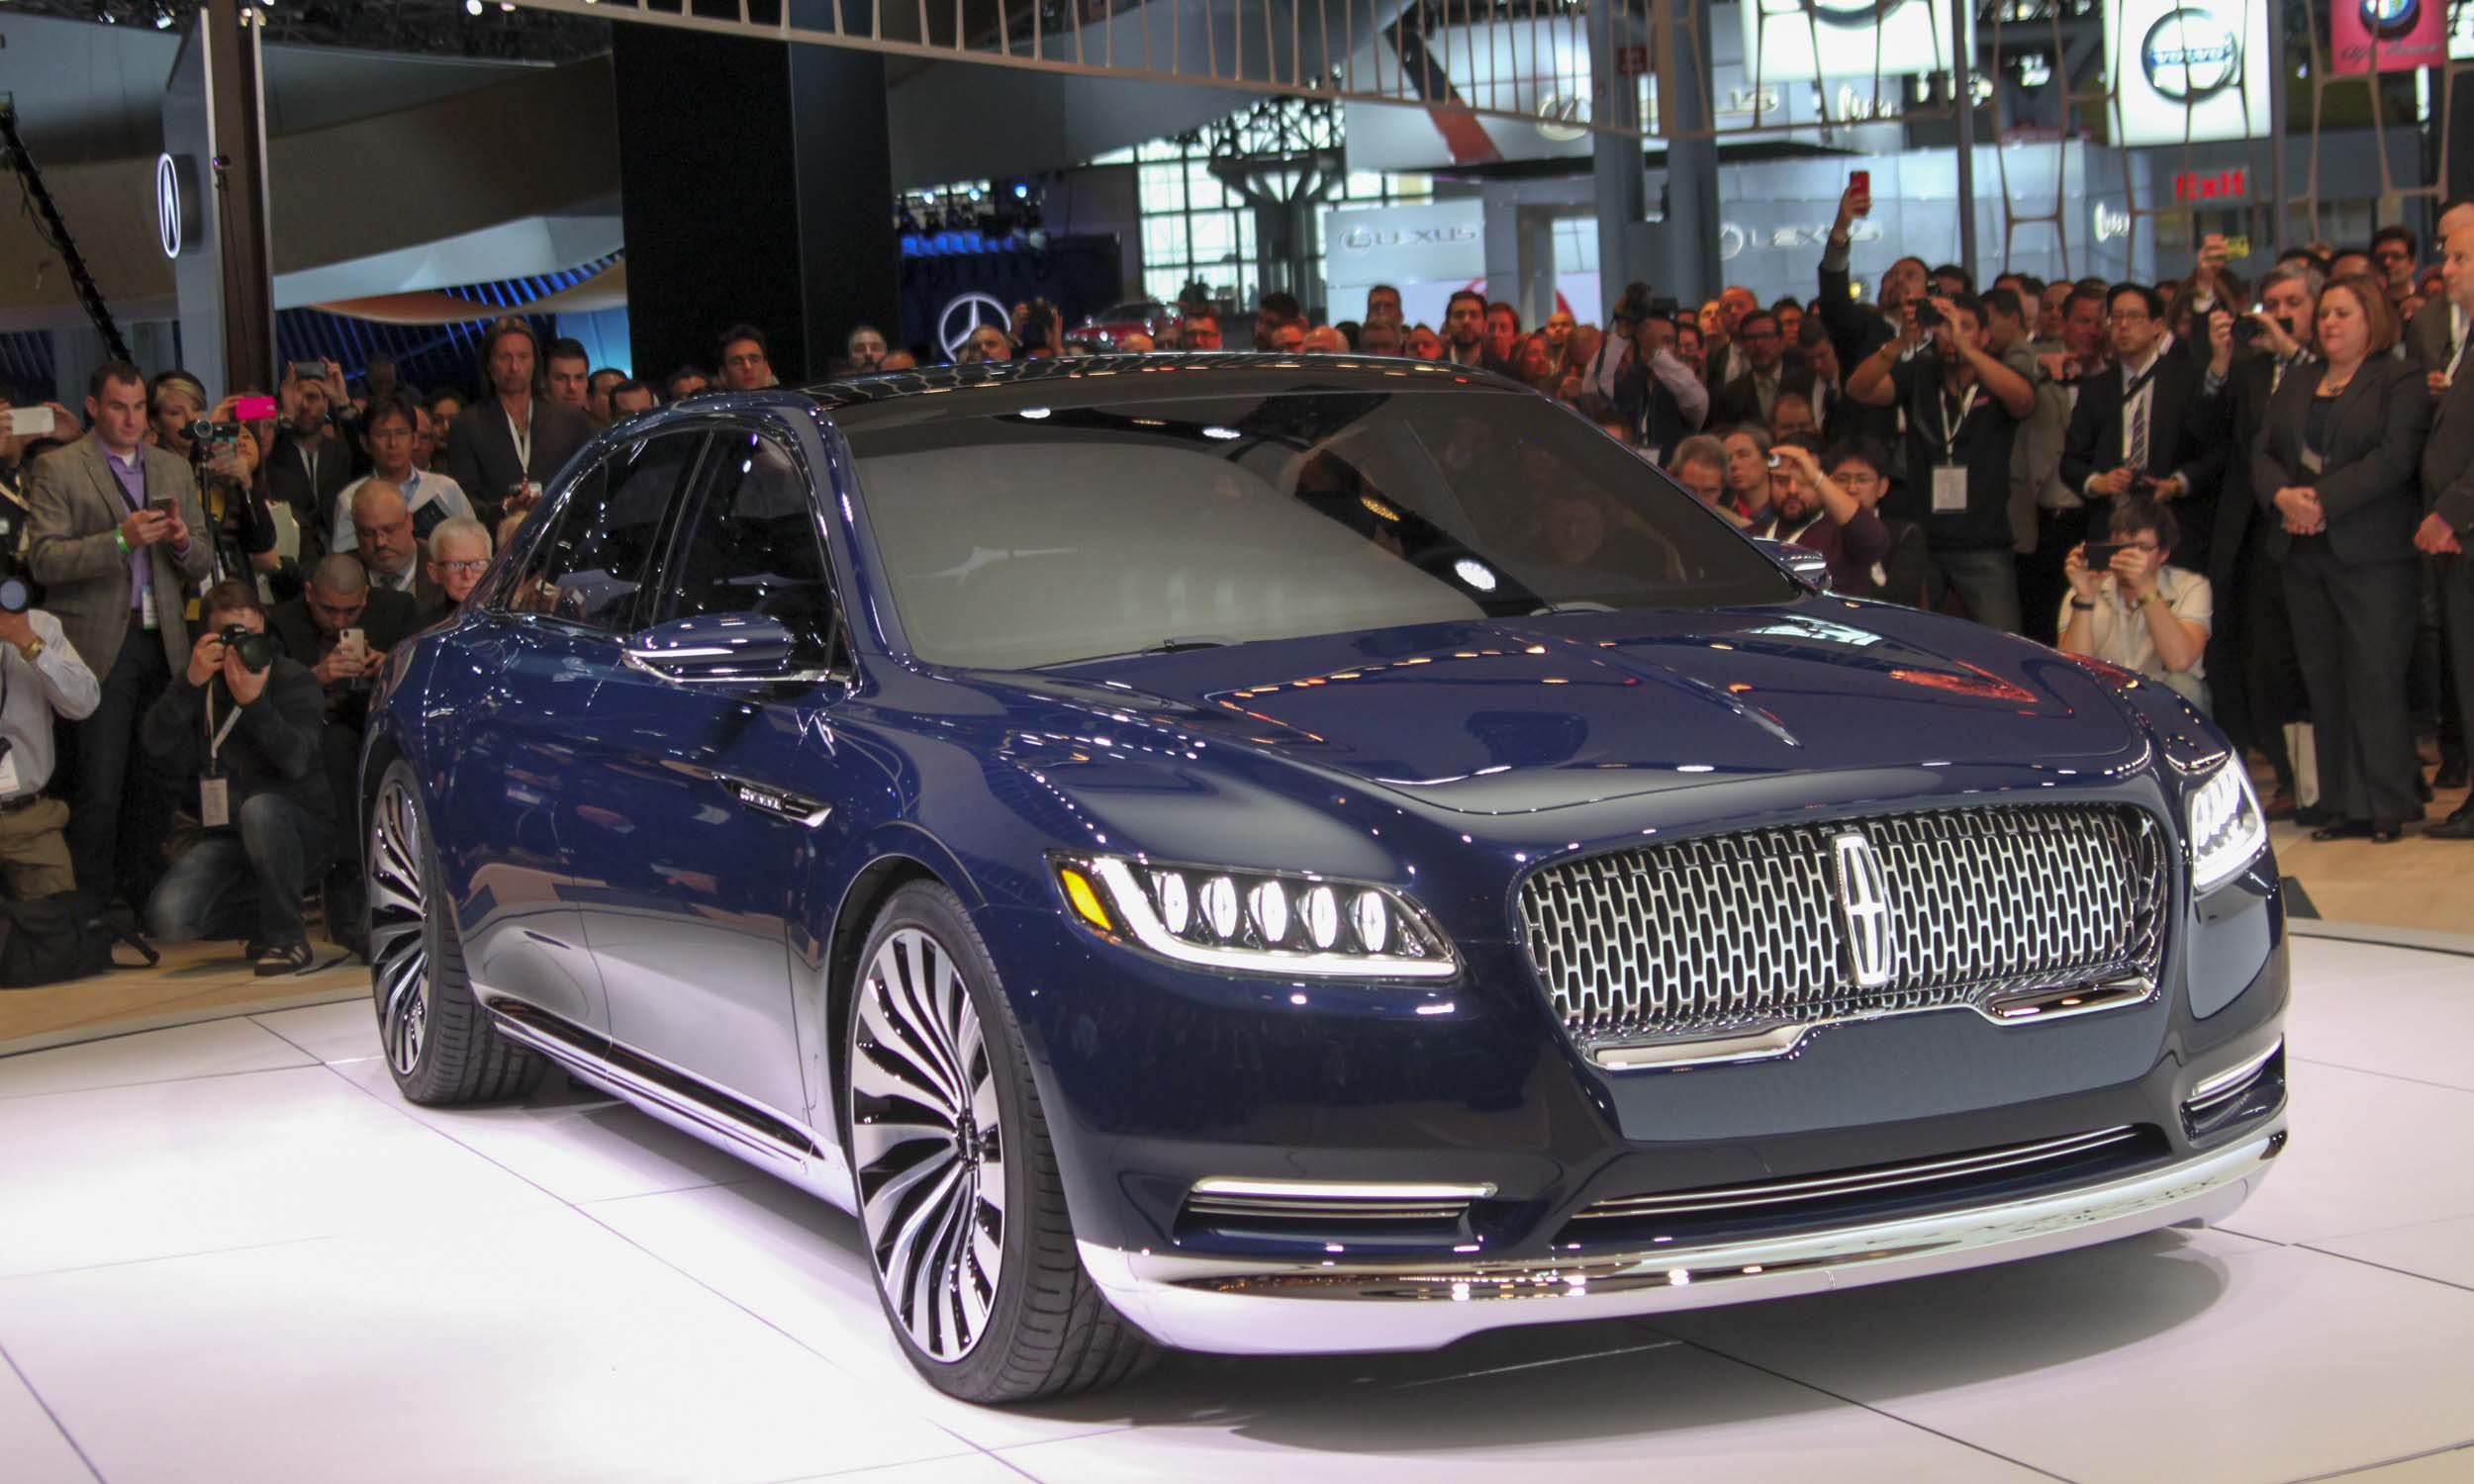 Pictures From The New York Auto Show